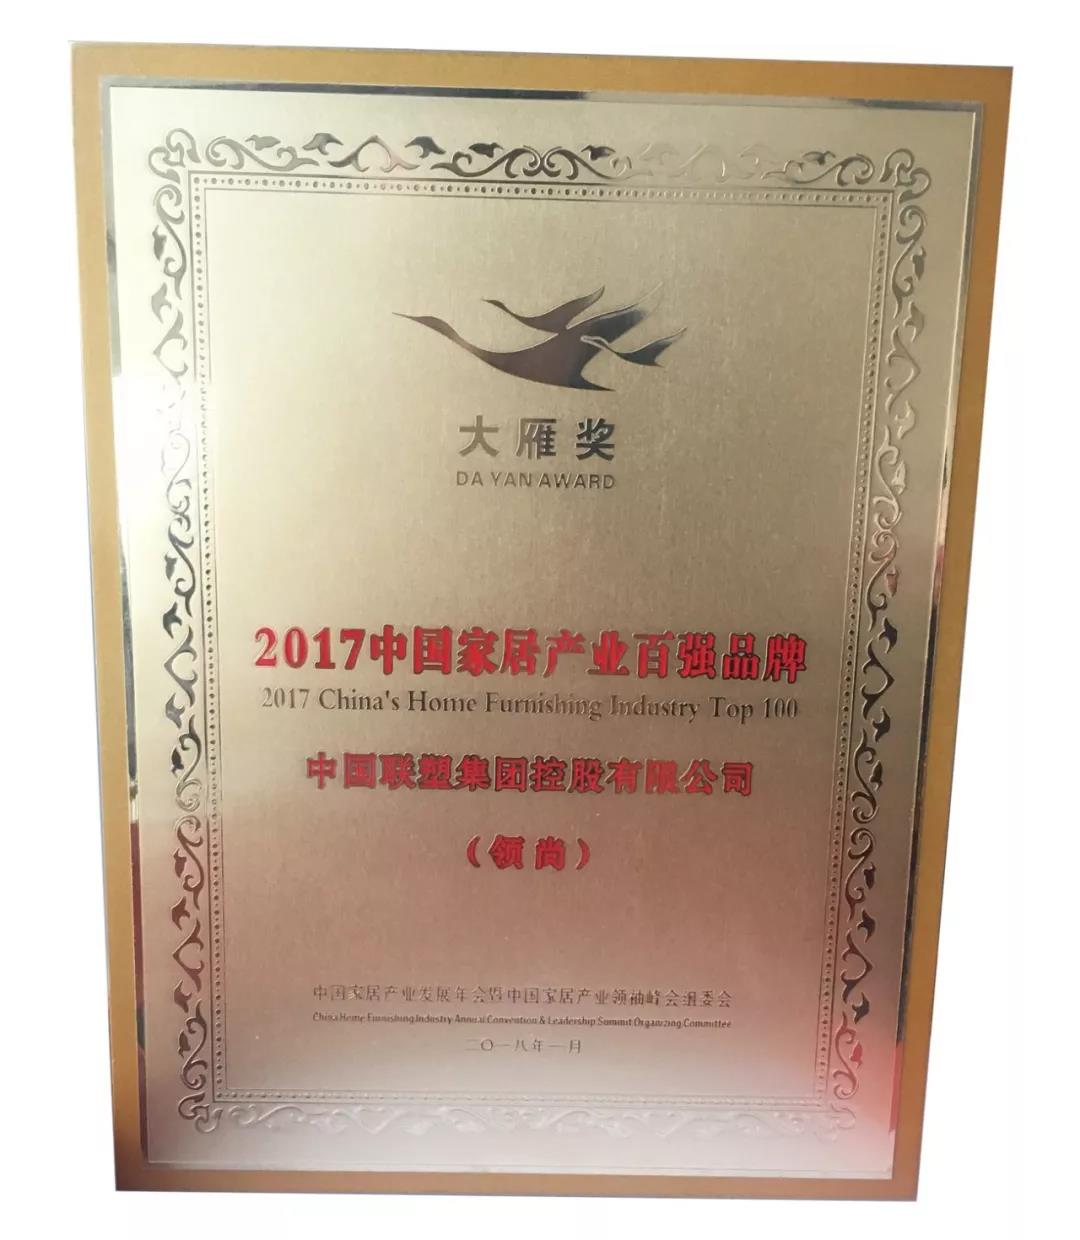 2017 China's Home Furnishing Industry Top100